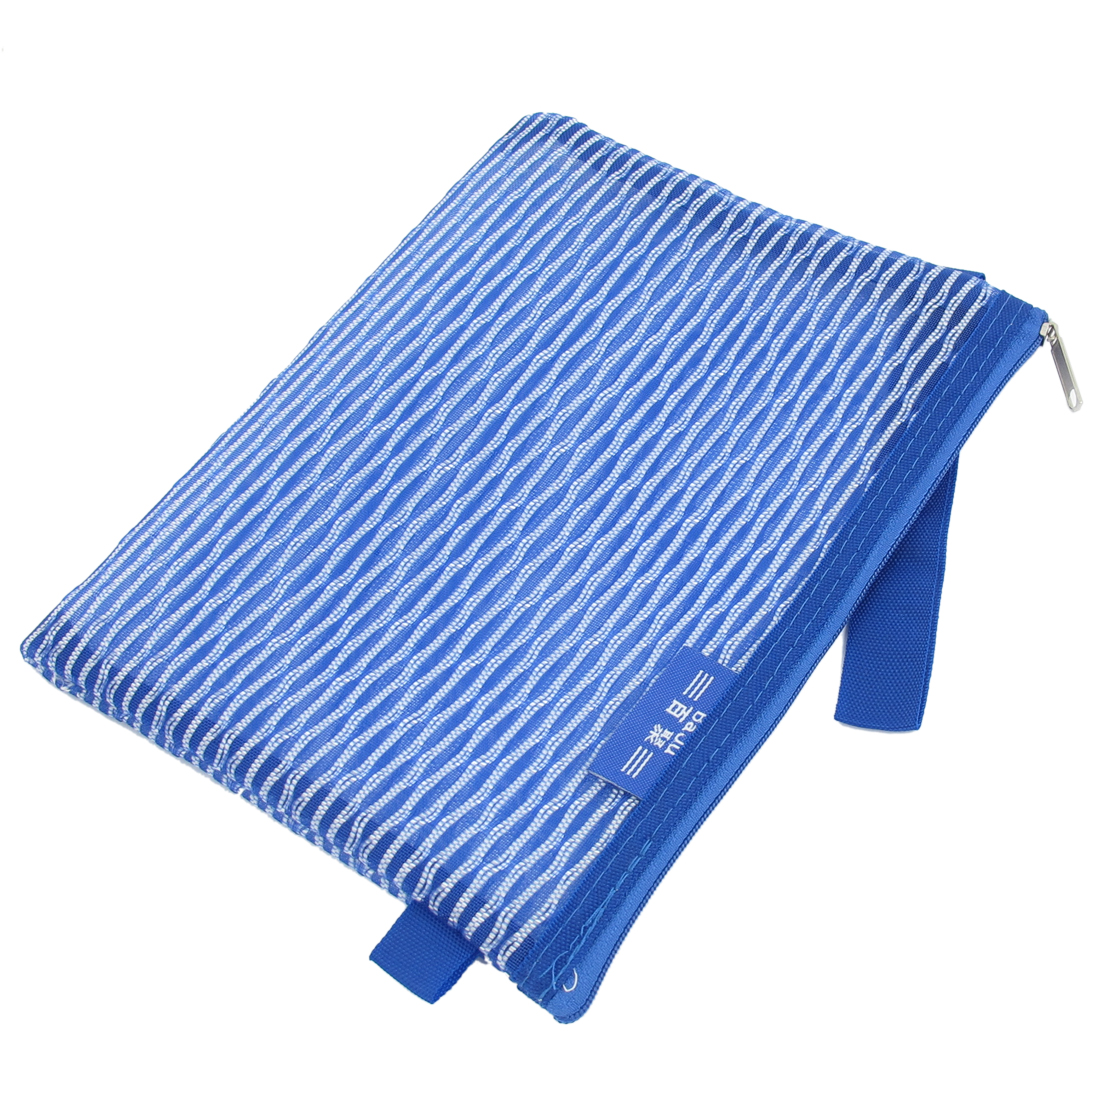 Zip Up Gridding A5 Paper Pen Pencil File Case Bag Holder Blue